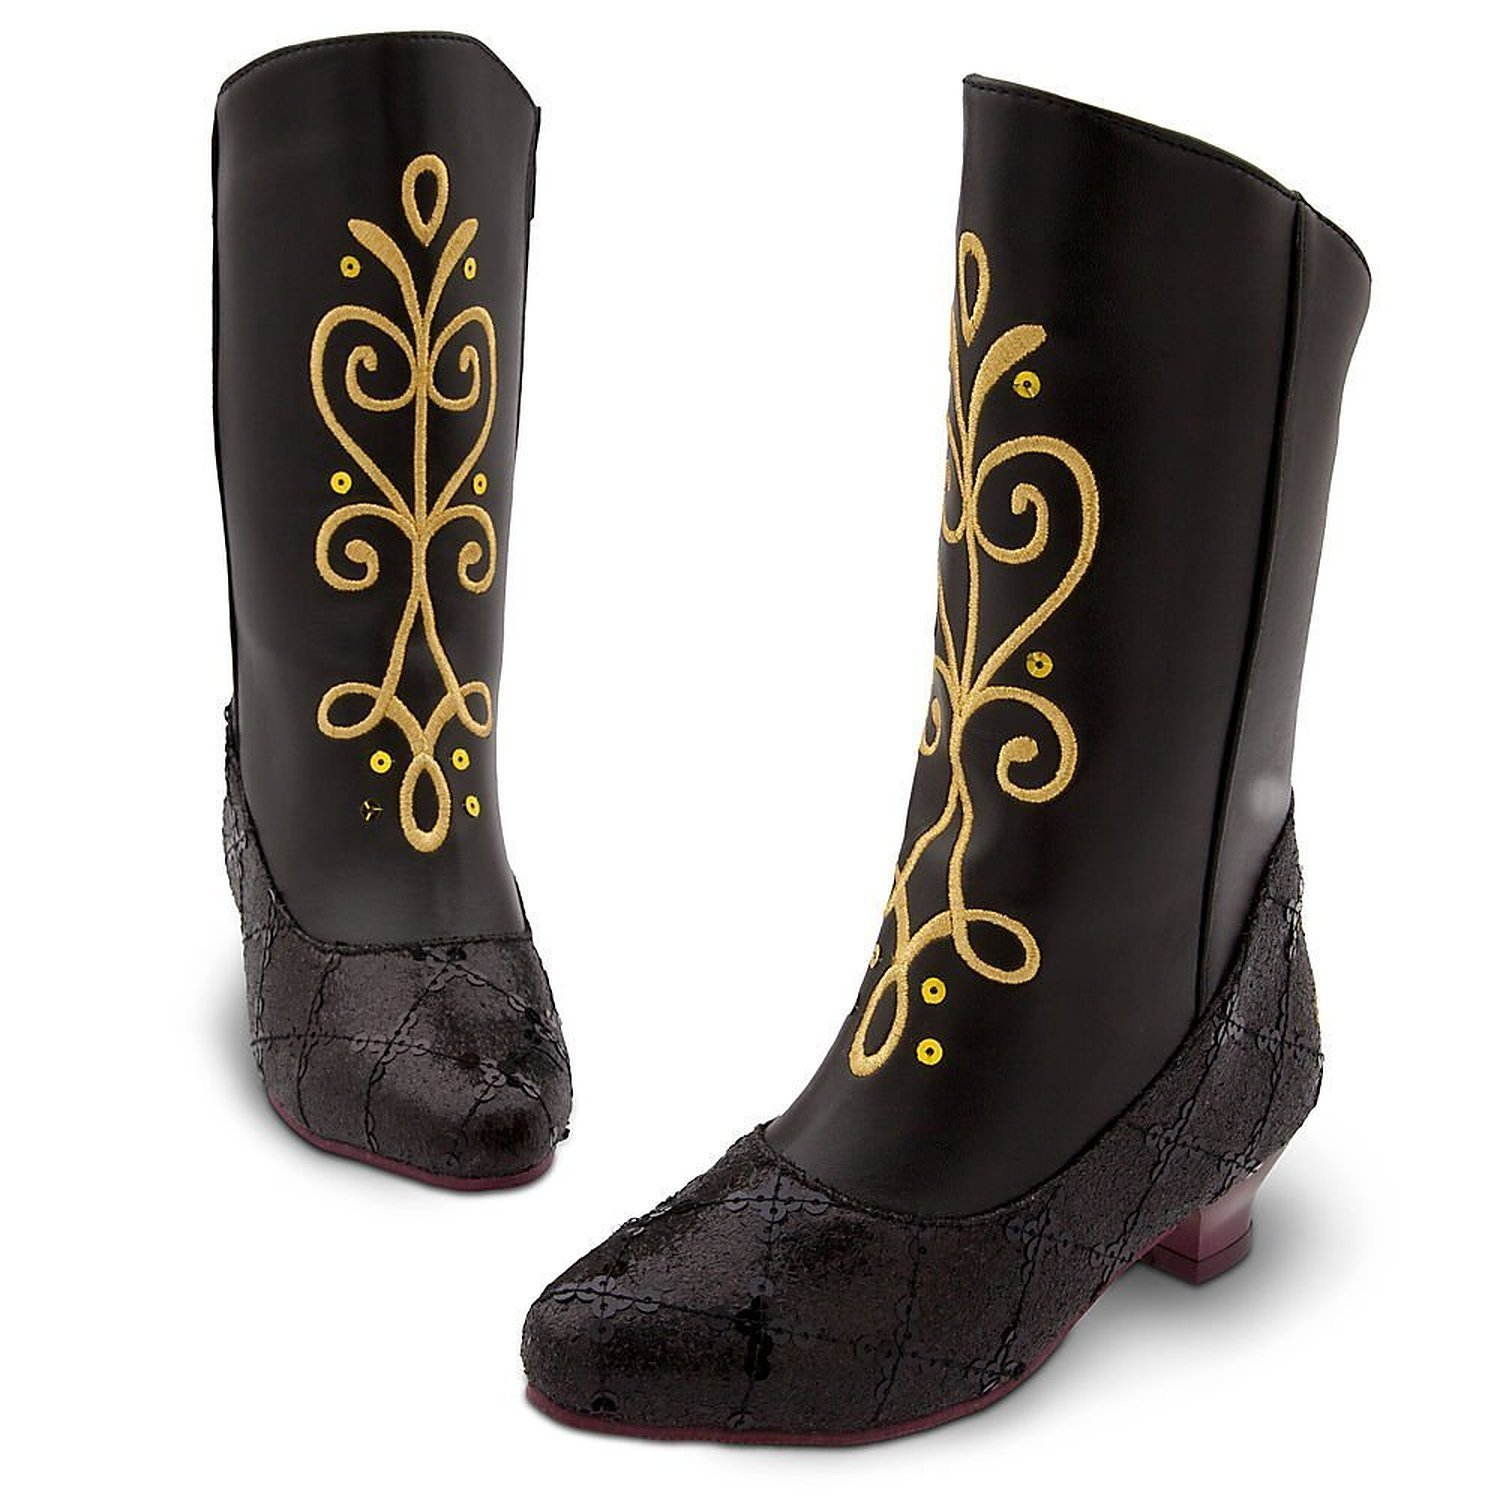 Amazon.com: Disney Store Anna Boots for Girls Frozen Size 11 - 12 ...